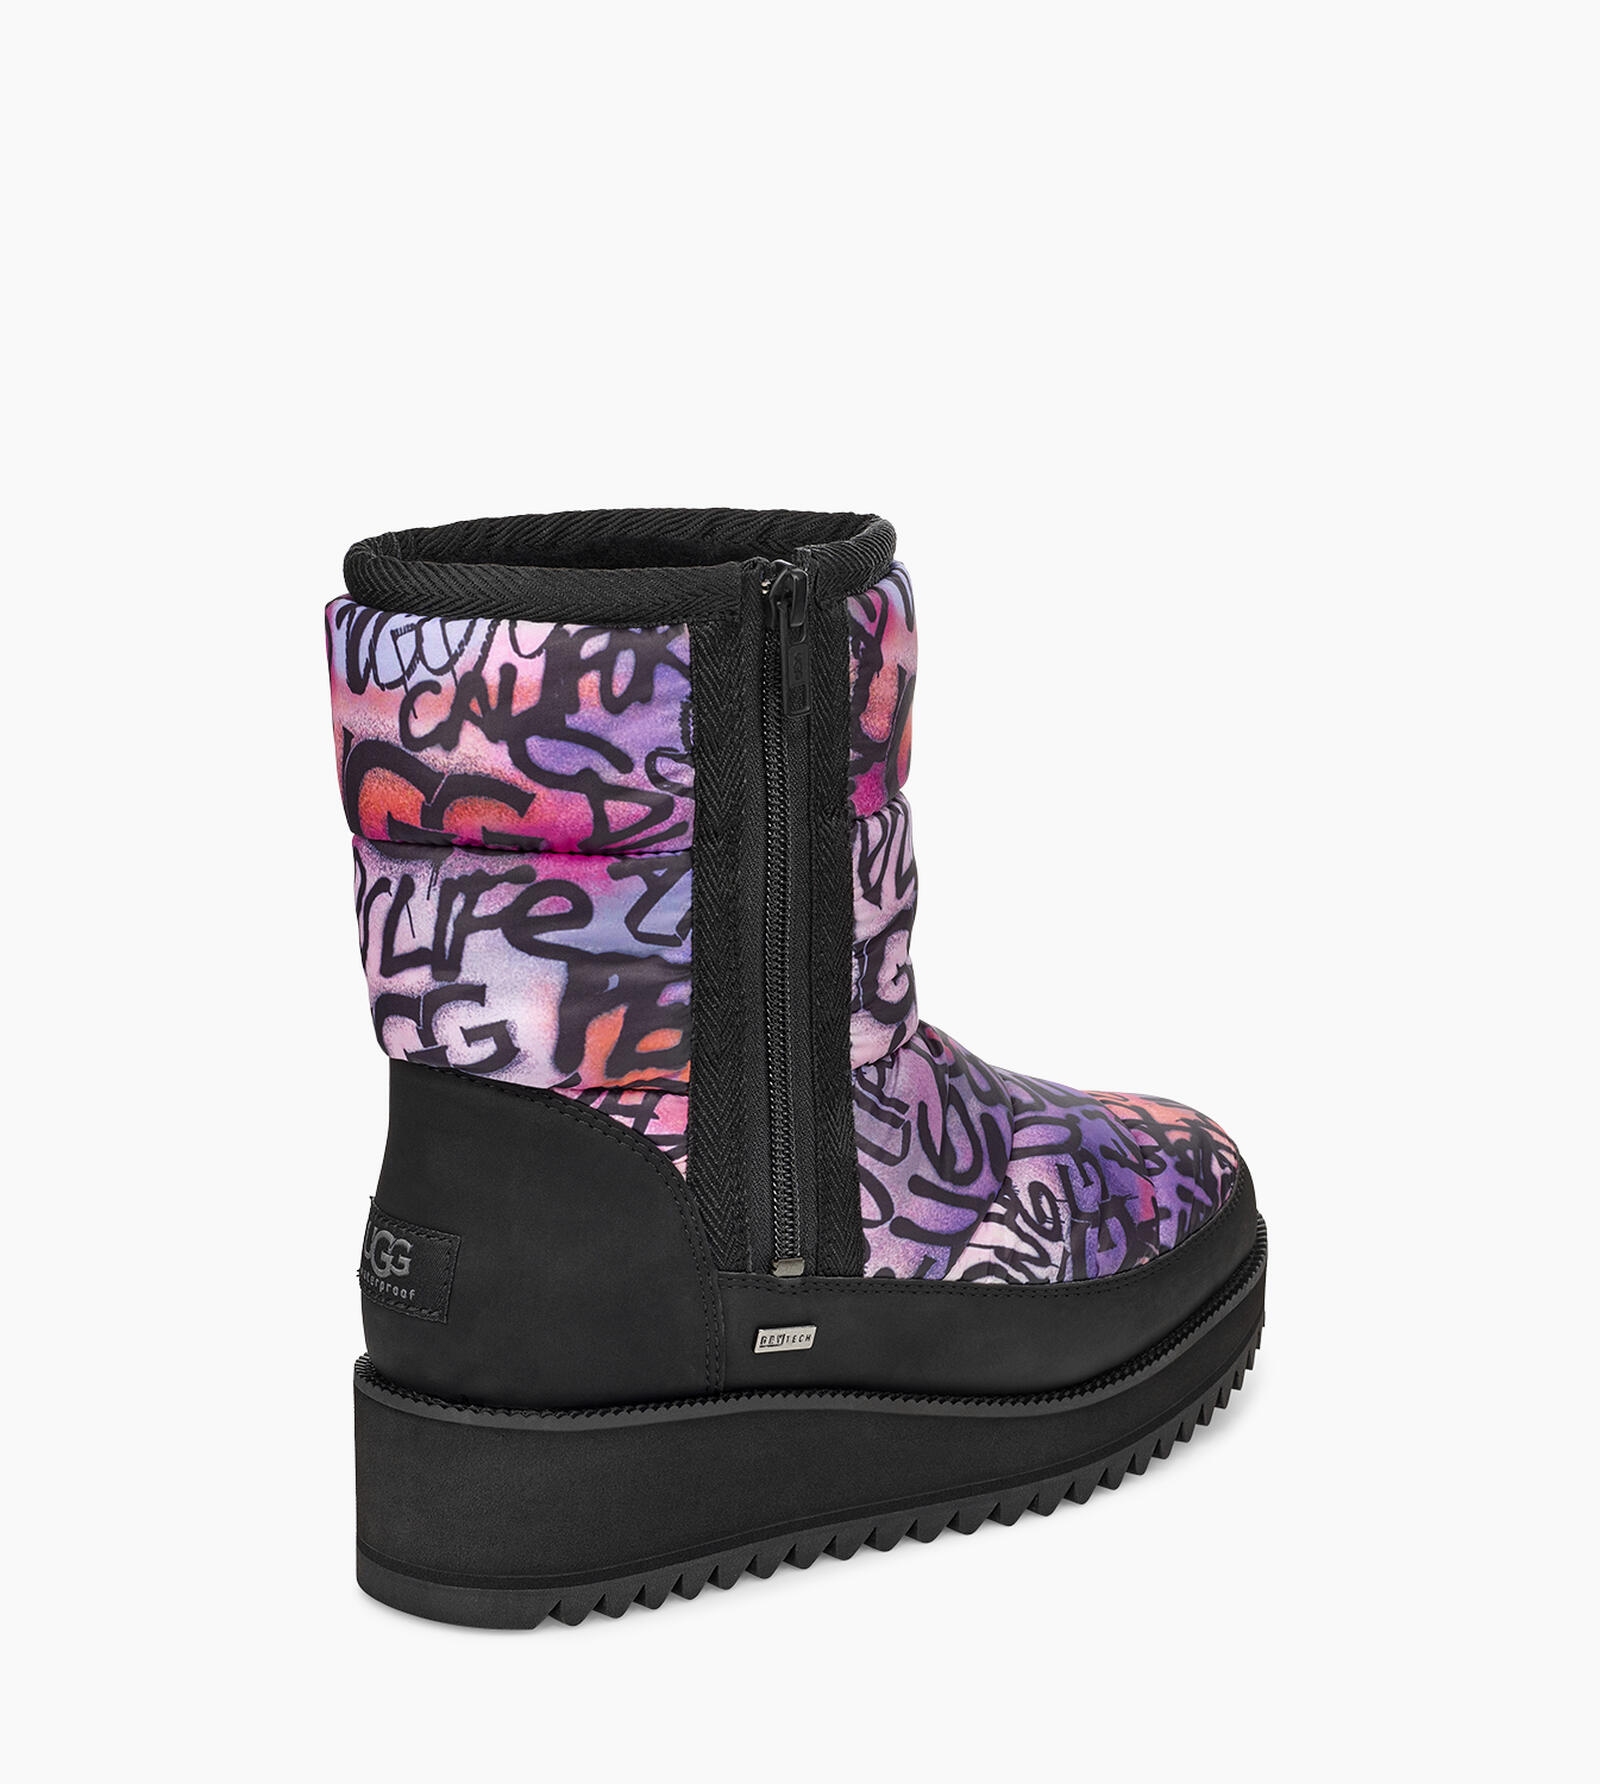 Ridge Graffiti Pop Snow Boot